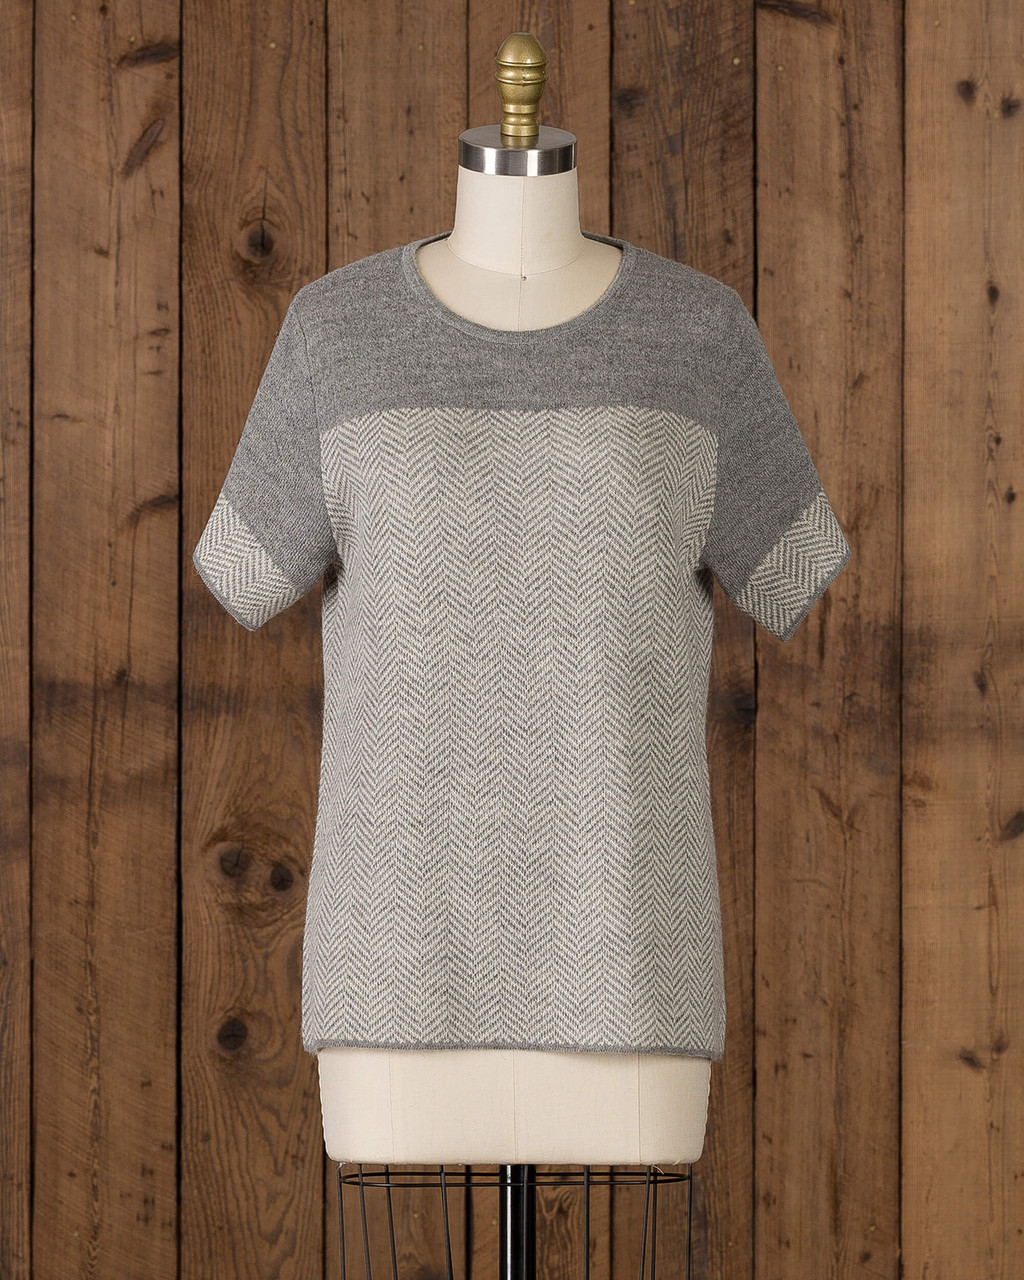 alicia adams alpaca alana top, womens alpaca sweater, lightweight womens alpaca top, alpaca sweater, alpaca vs cashmere, pearl grey womens alpaca top